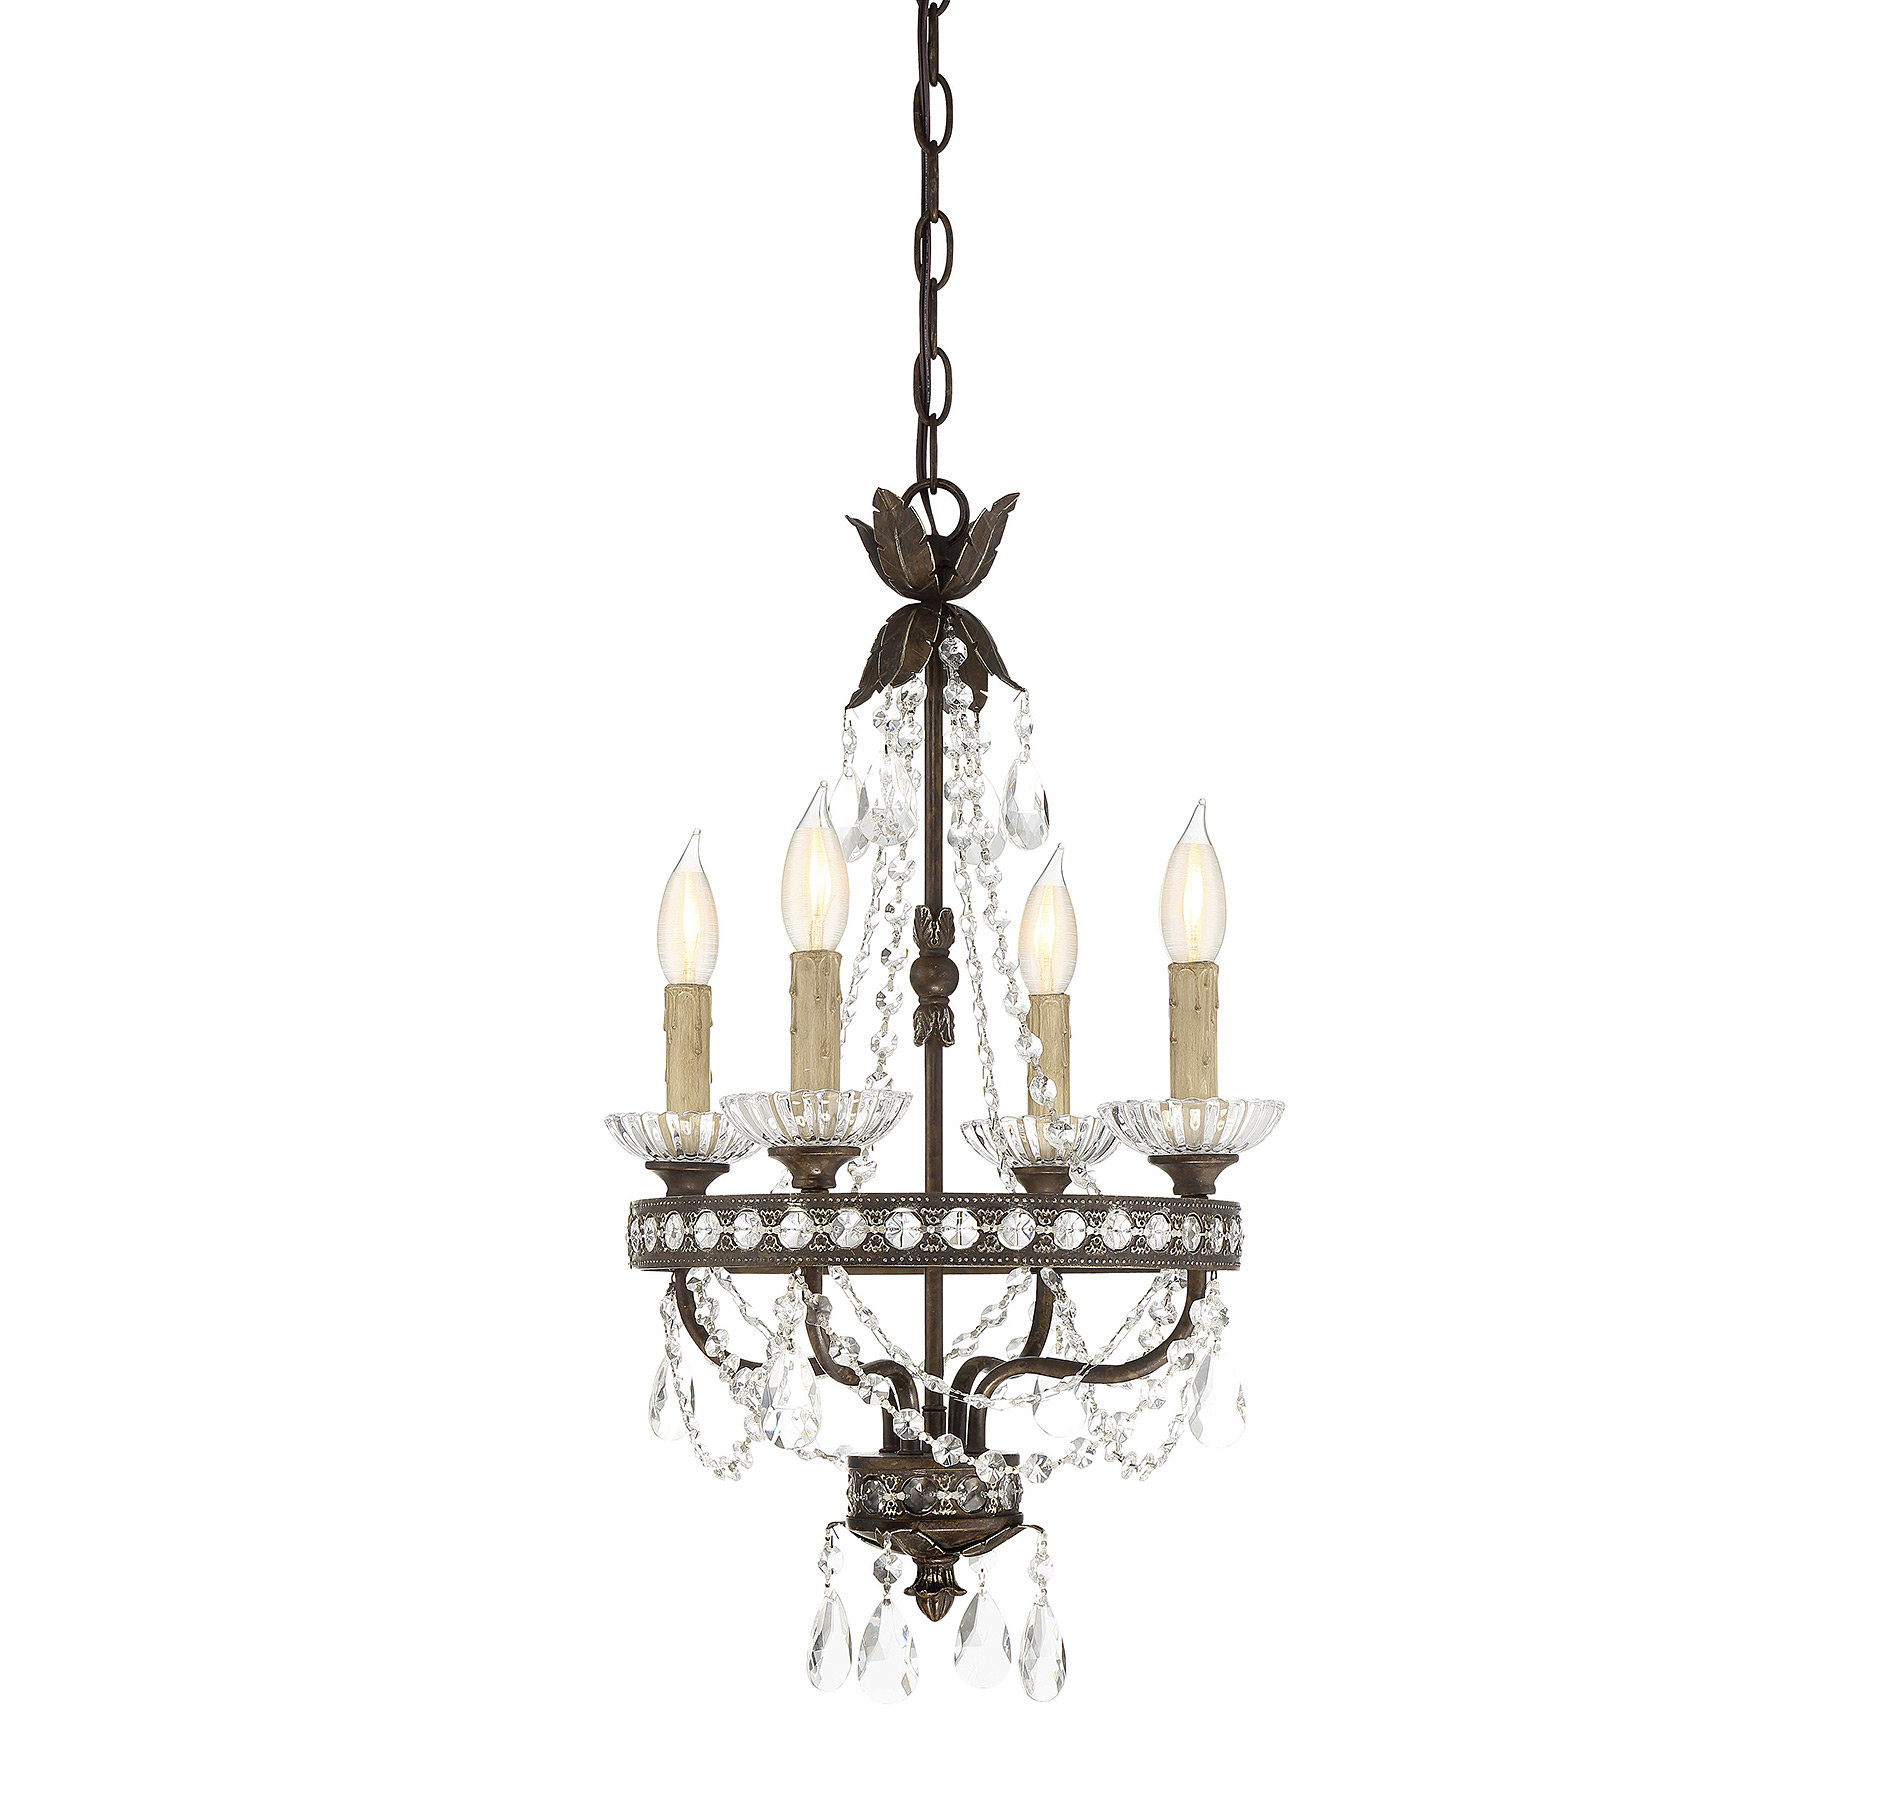 Lefler 4 Light Candle Style Chandelier Within Hesse 5 Light Candle Style Chandeliers (View 13 of 30)